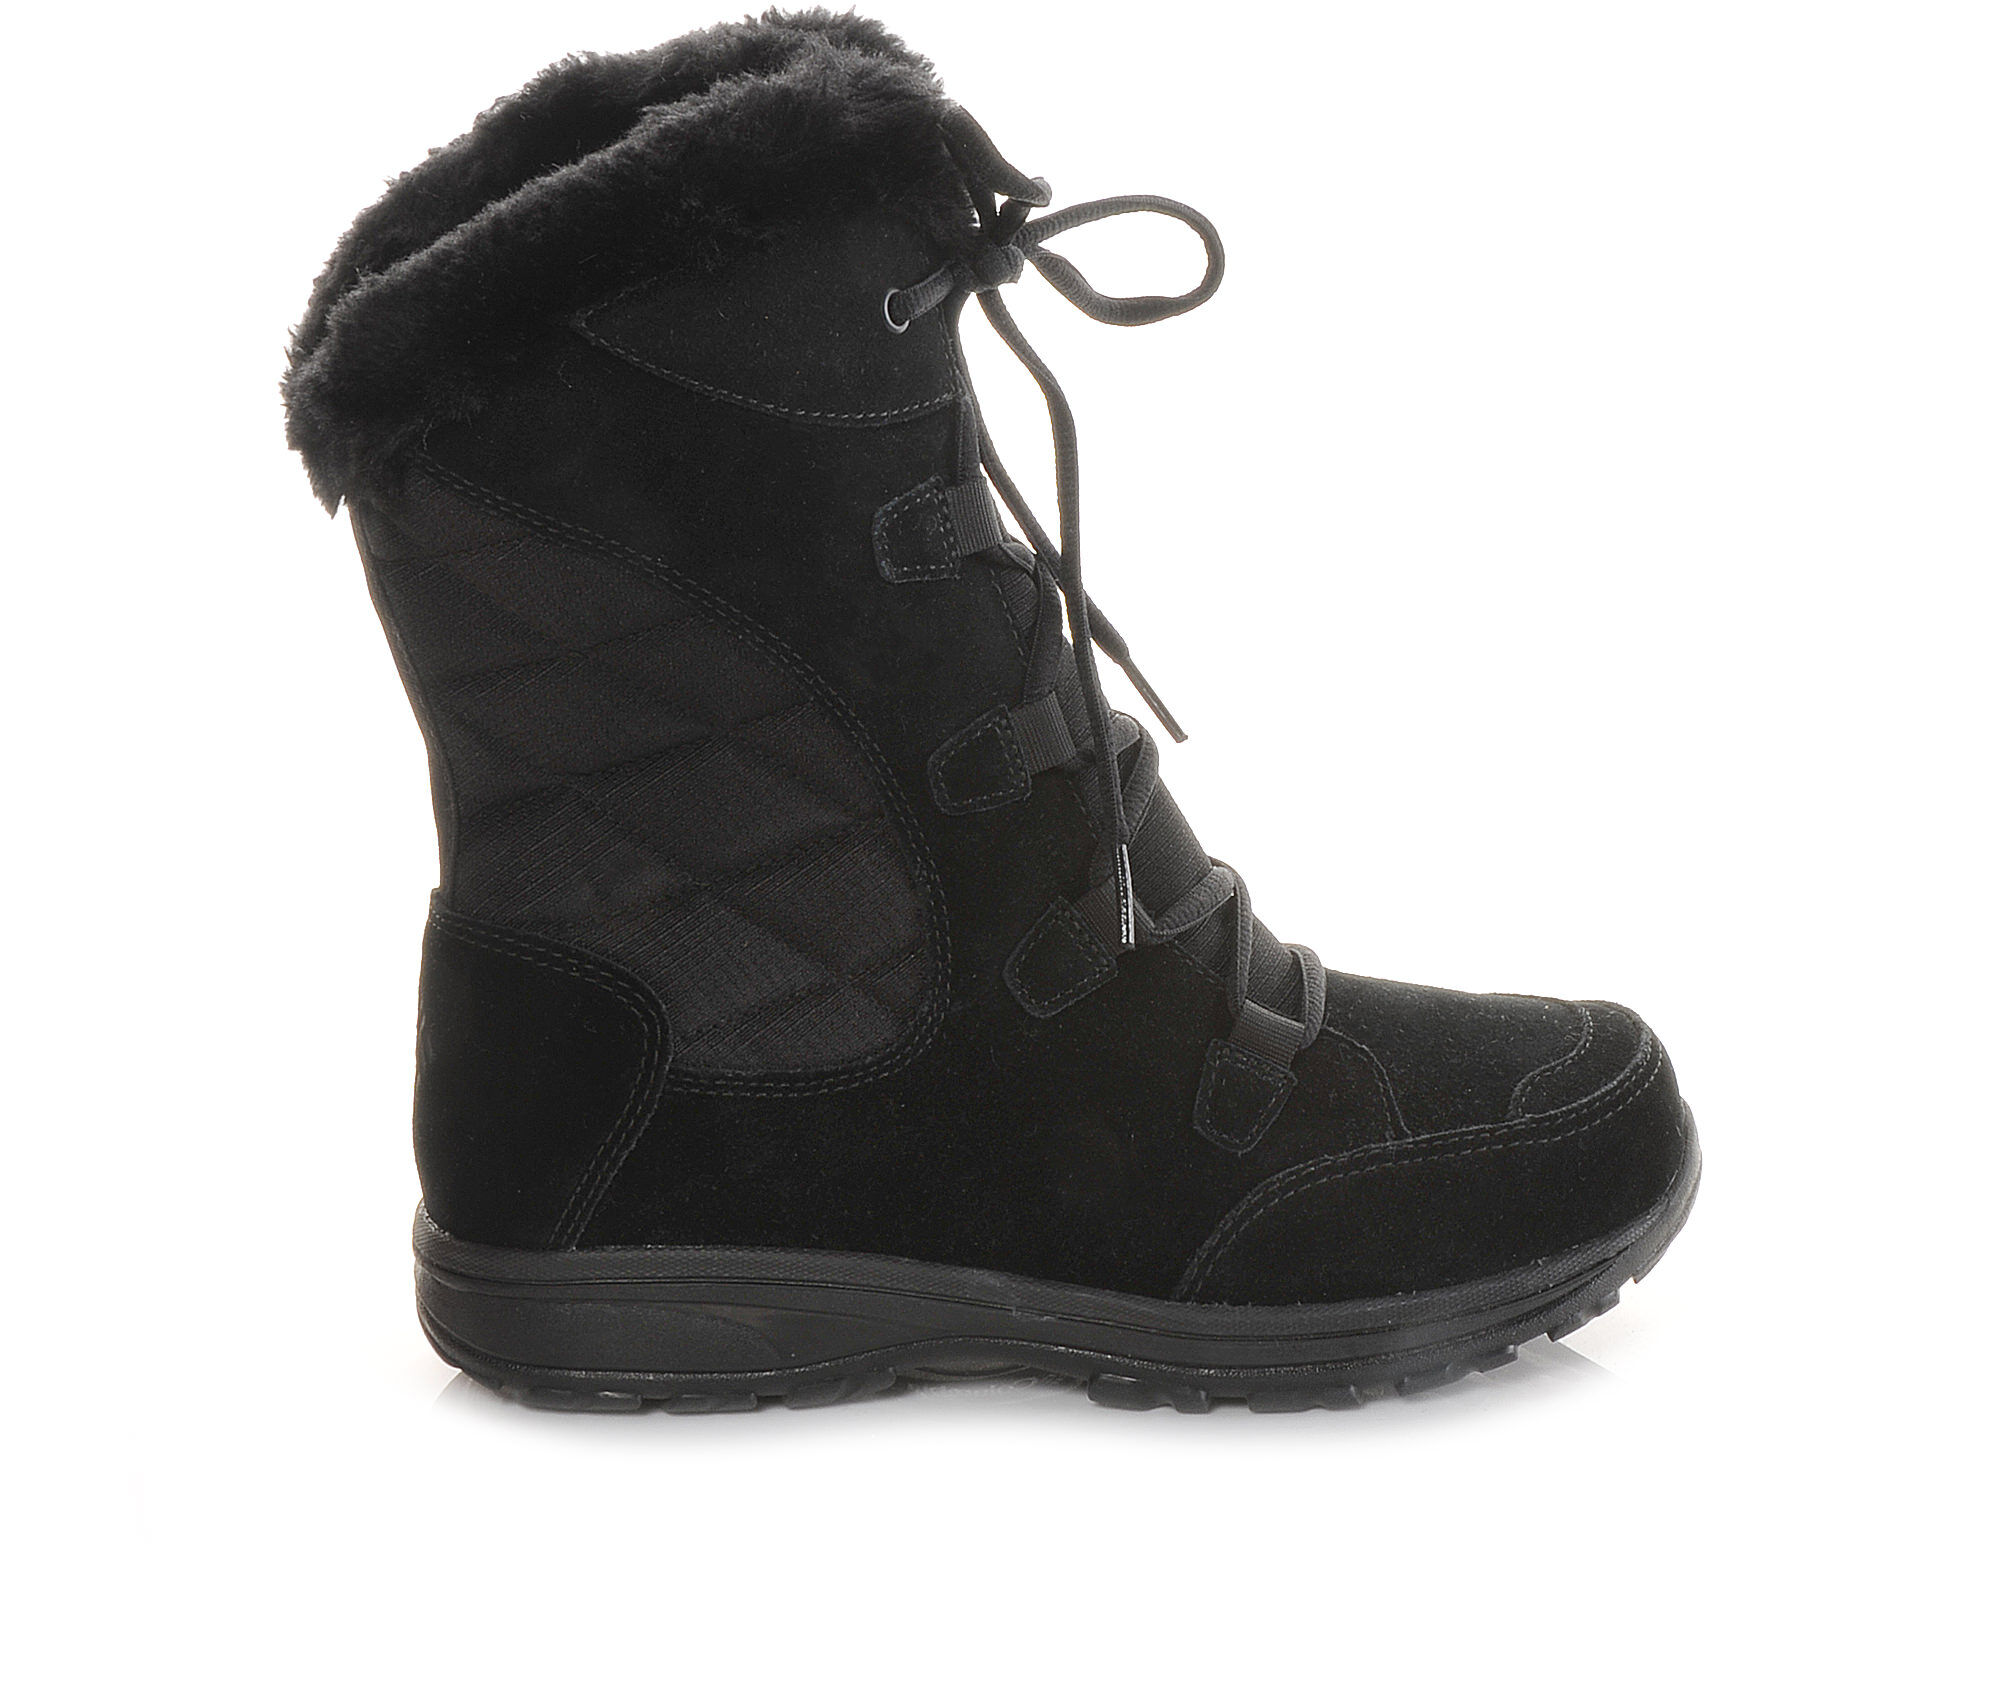 great savings Women's Columbia Ice Maiden Winter Boots Black/Grey